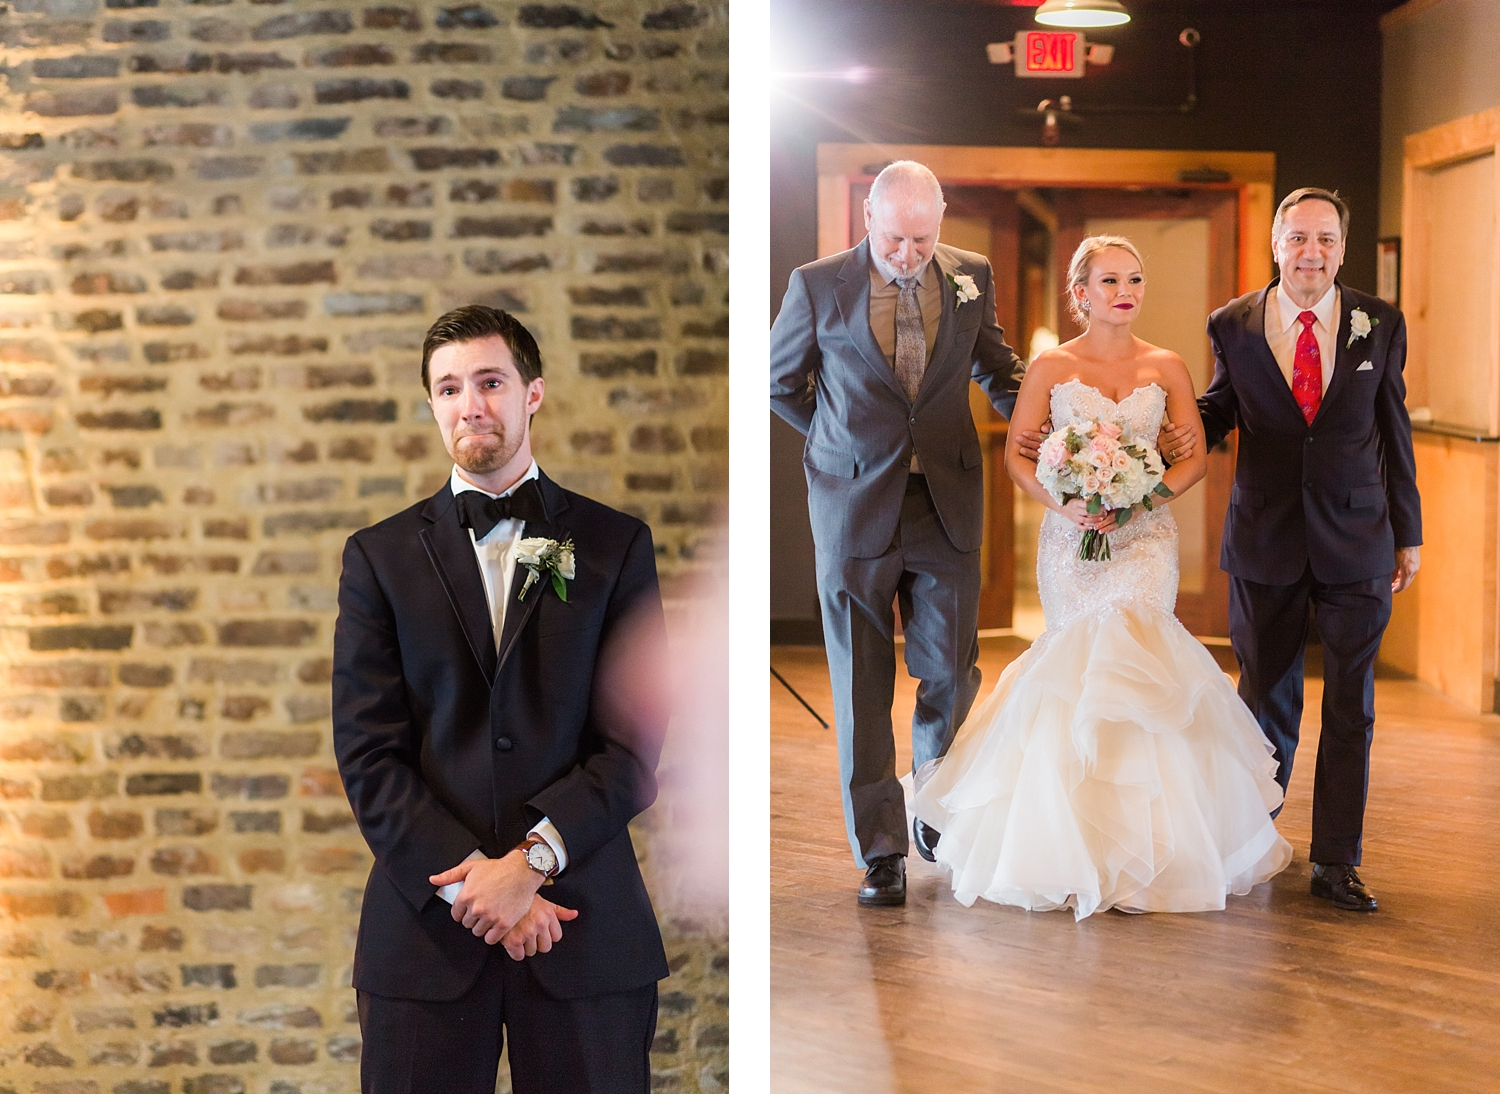 two-dads-walking-bride-down-aisle.jpg